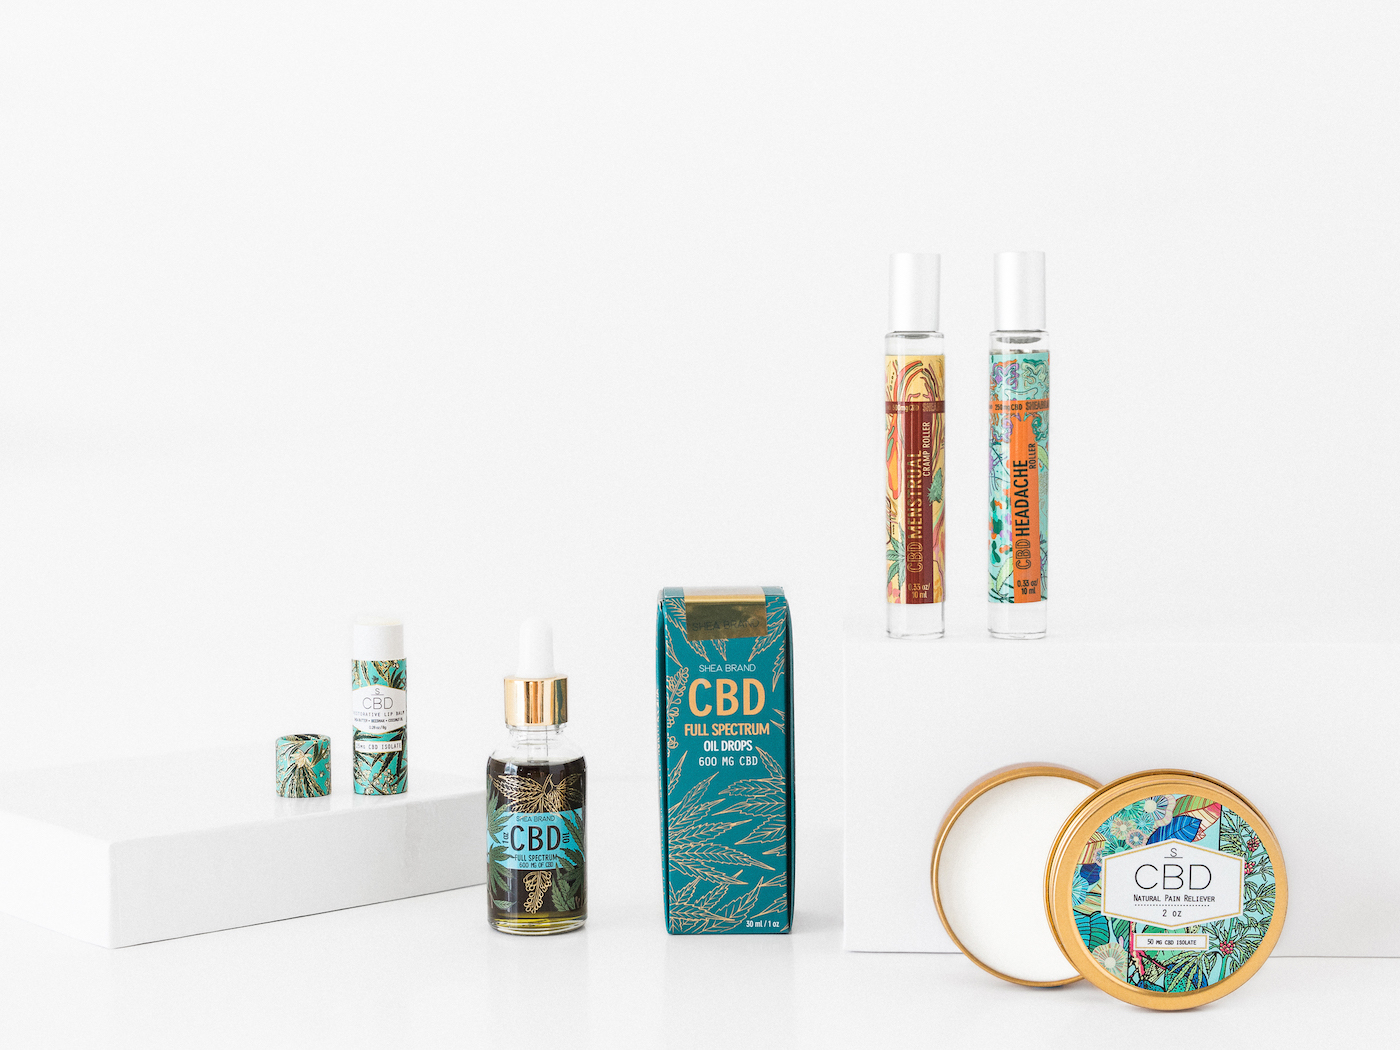 Voyage + Heart - Mail In Product Photography - Shea Brand - Product Photographers for Natural Skincare Lines - Shea Brand CBD Pain Reliever - Shea Brand CBD Mentstrual Roller - Shea Brand Headache Roller - E Commerce Photographers for Skincare Brands